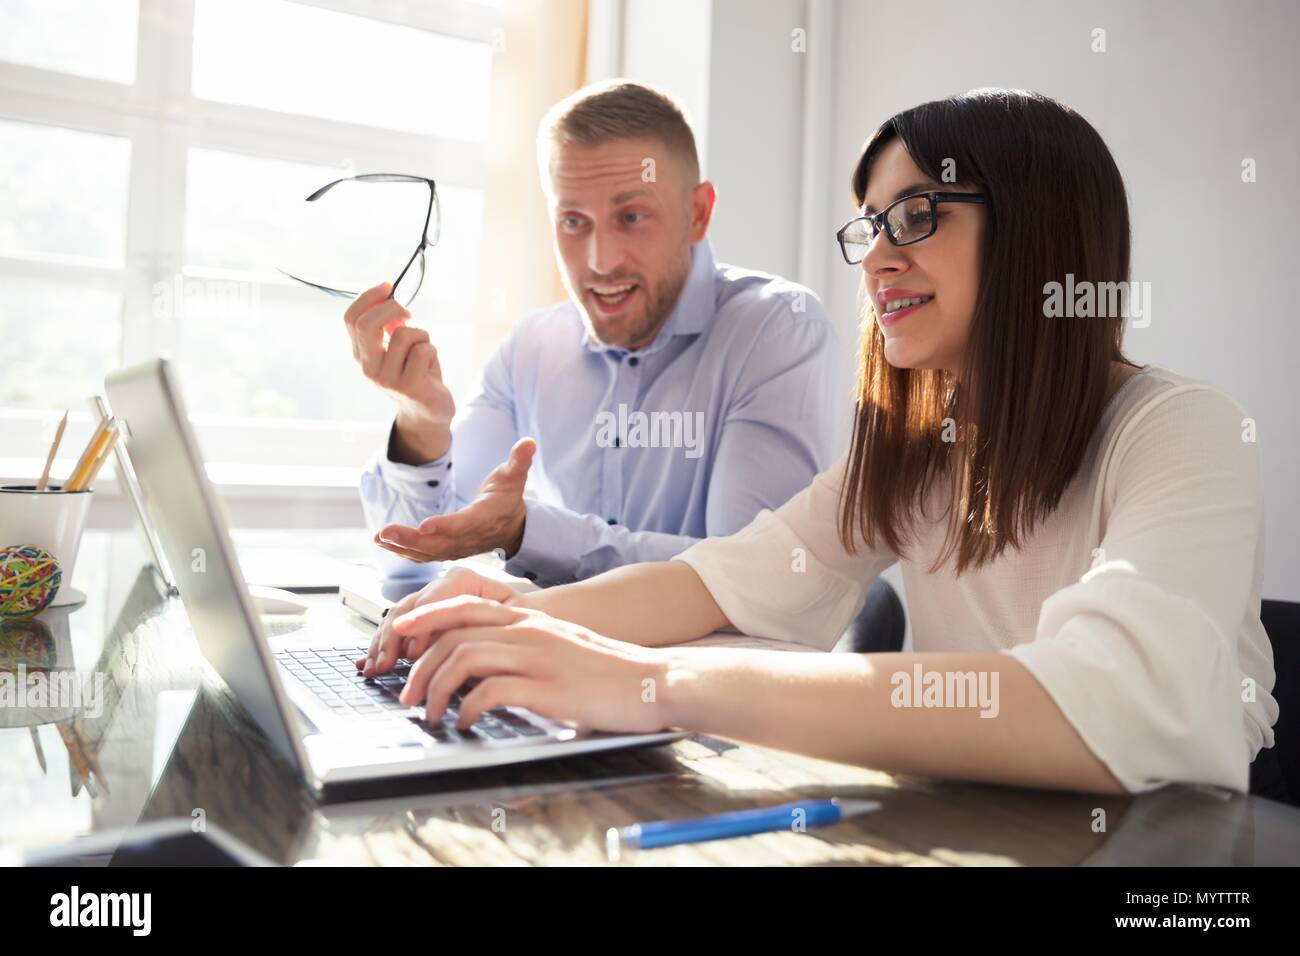 Angry man complaining to collegue at workplace in office - Stock Image